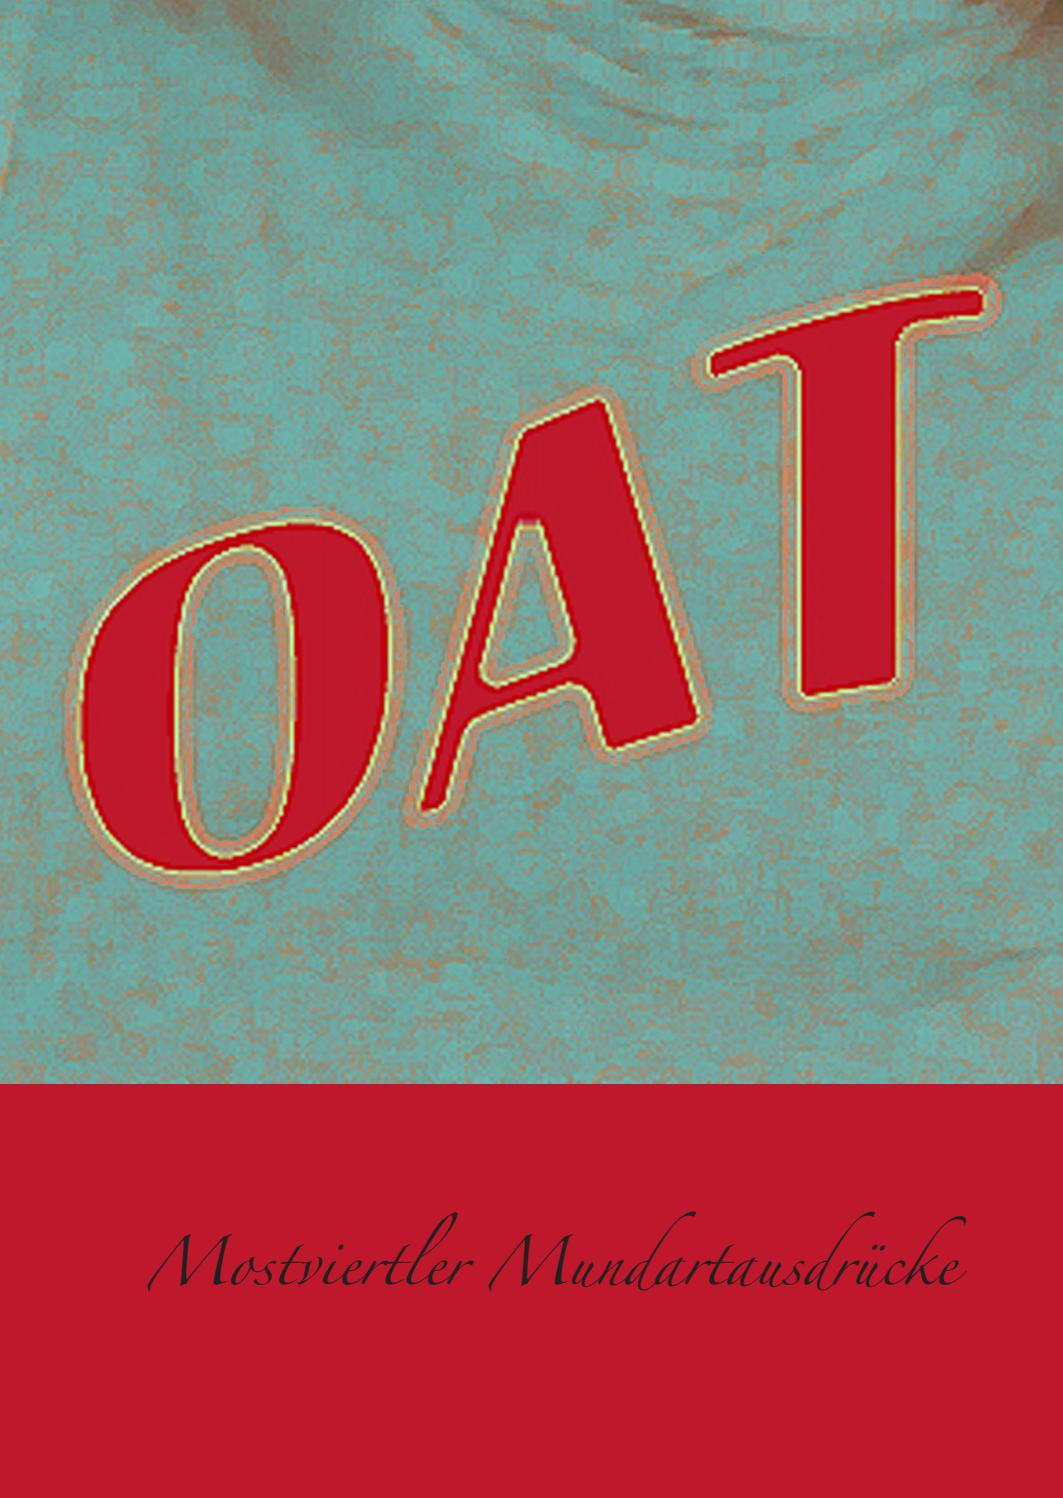 OAT - Mostviertler Mundart by kunstverein am donnerstag - issuu